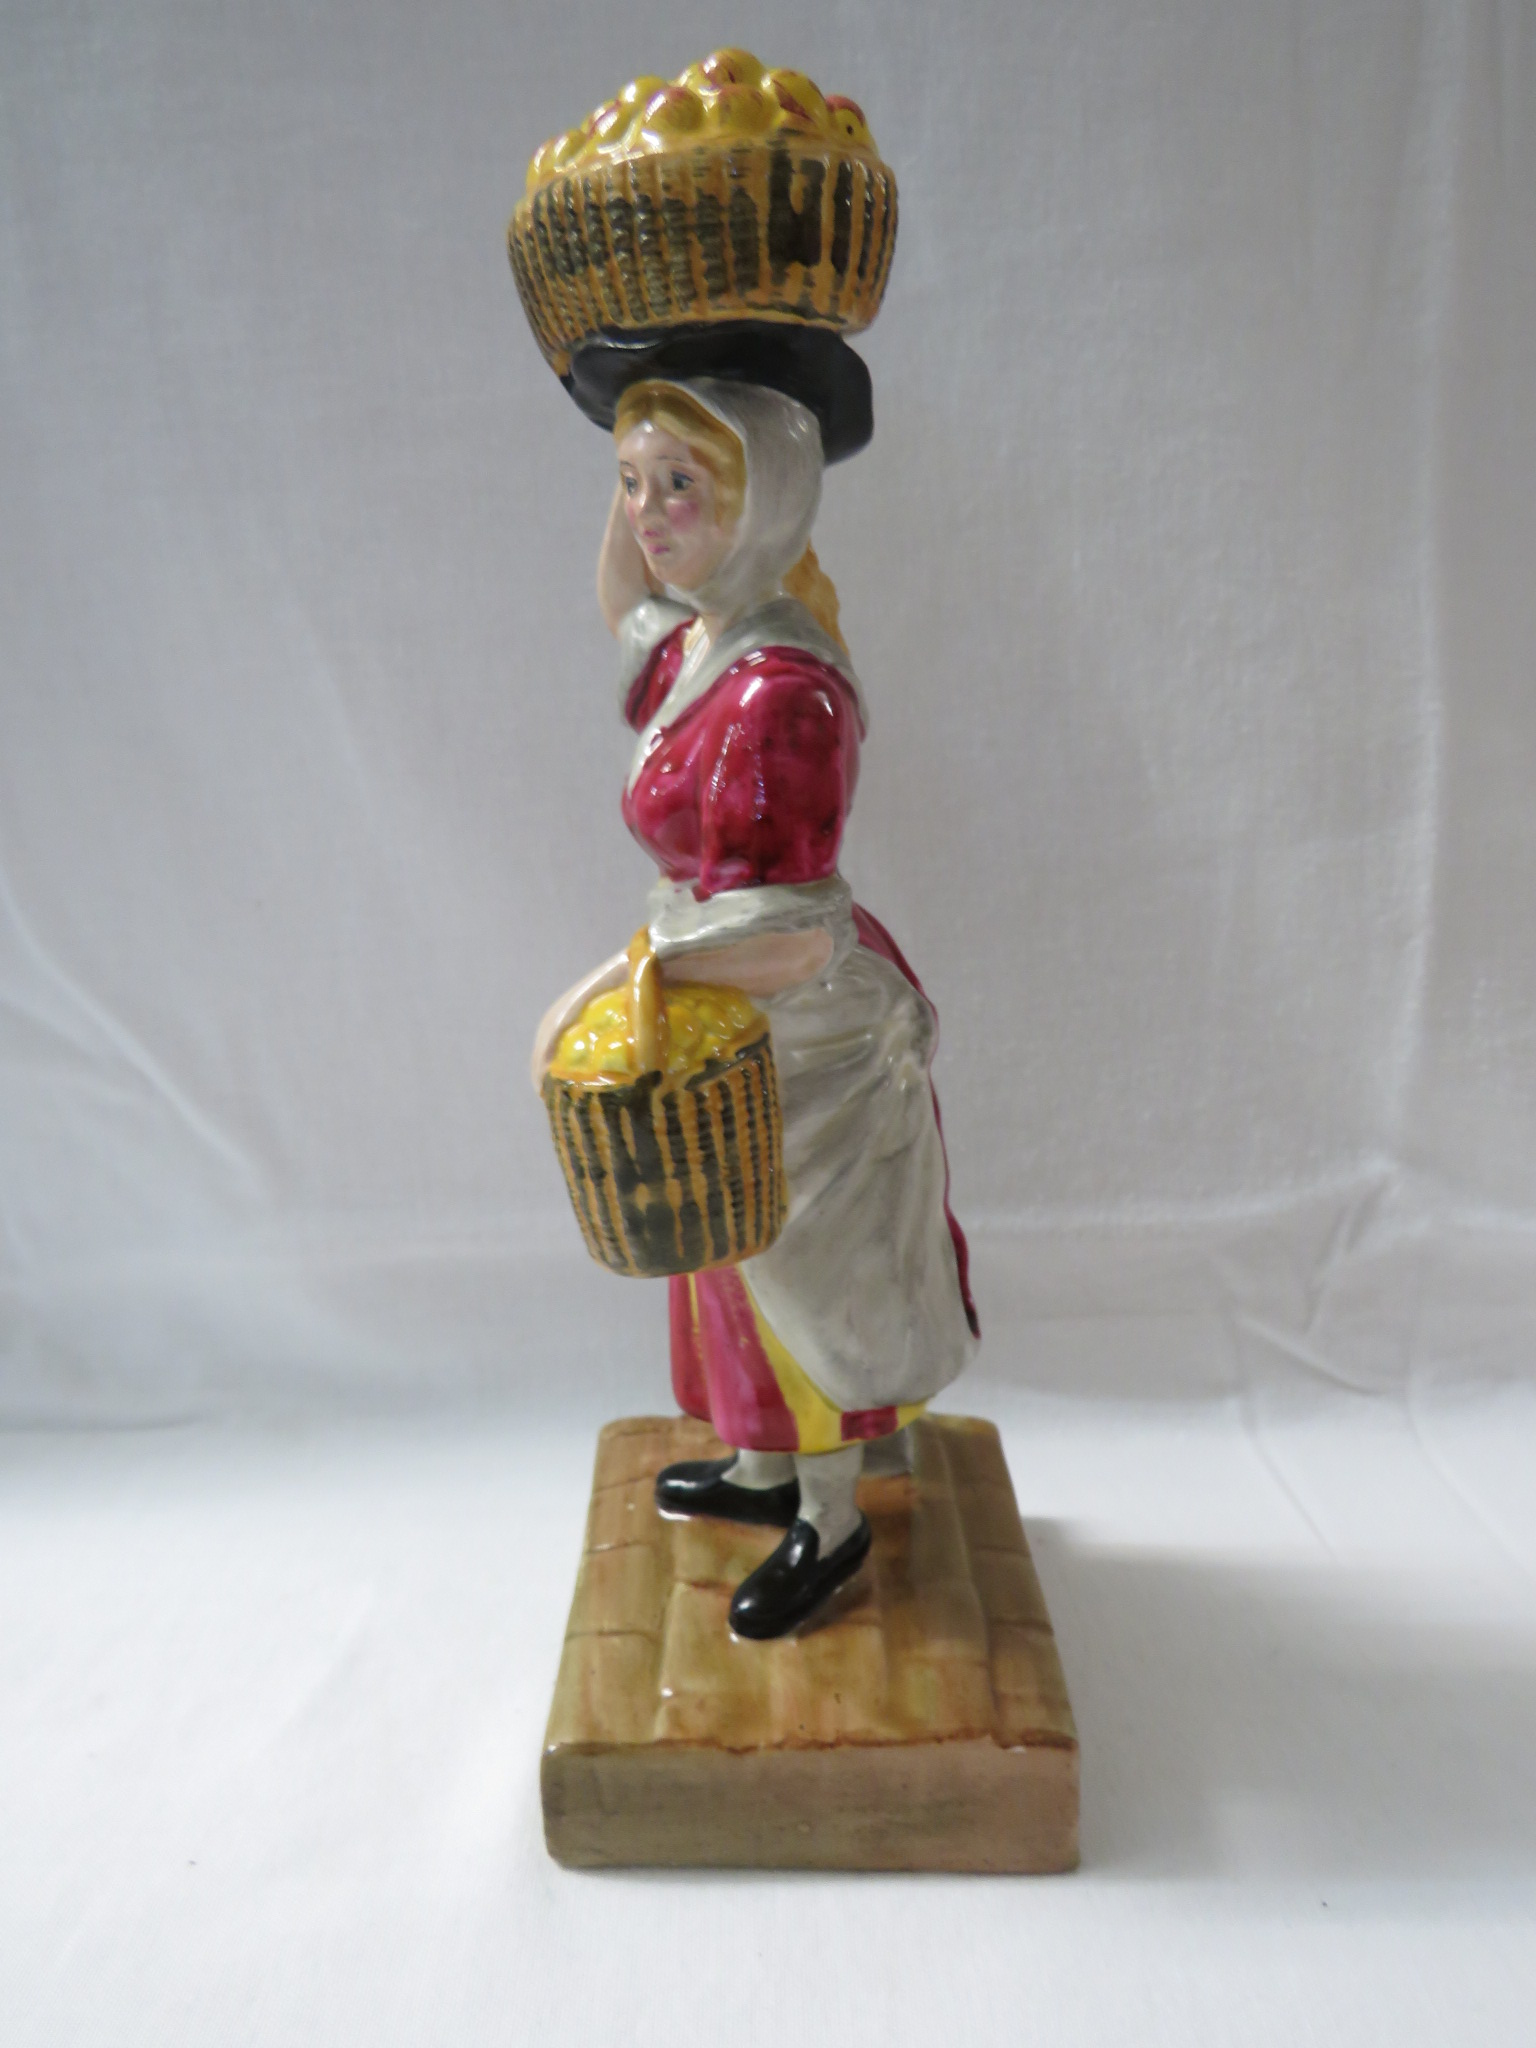 Lot 46 - Wilkinson Ltd Clarice Cliff pottery figure of woman street vendor with fruit baskets, the base